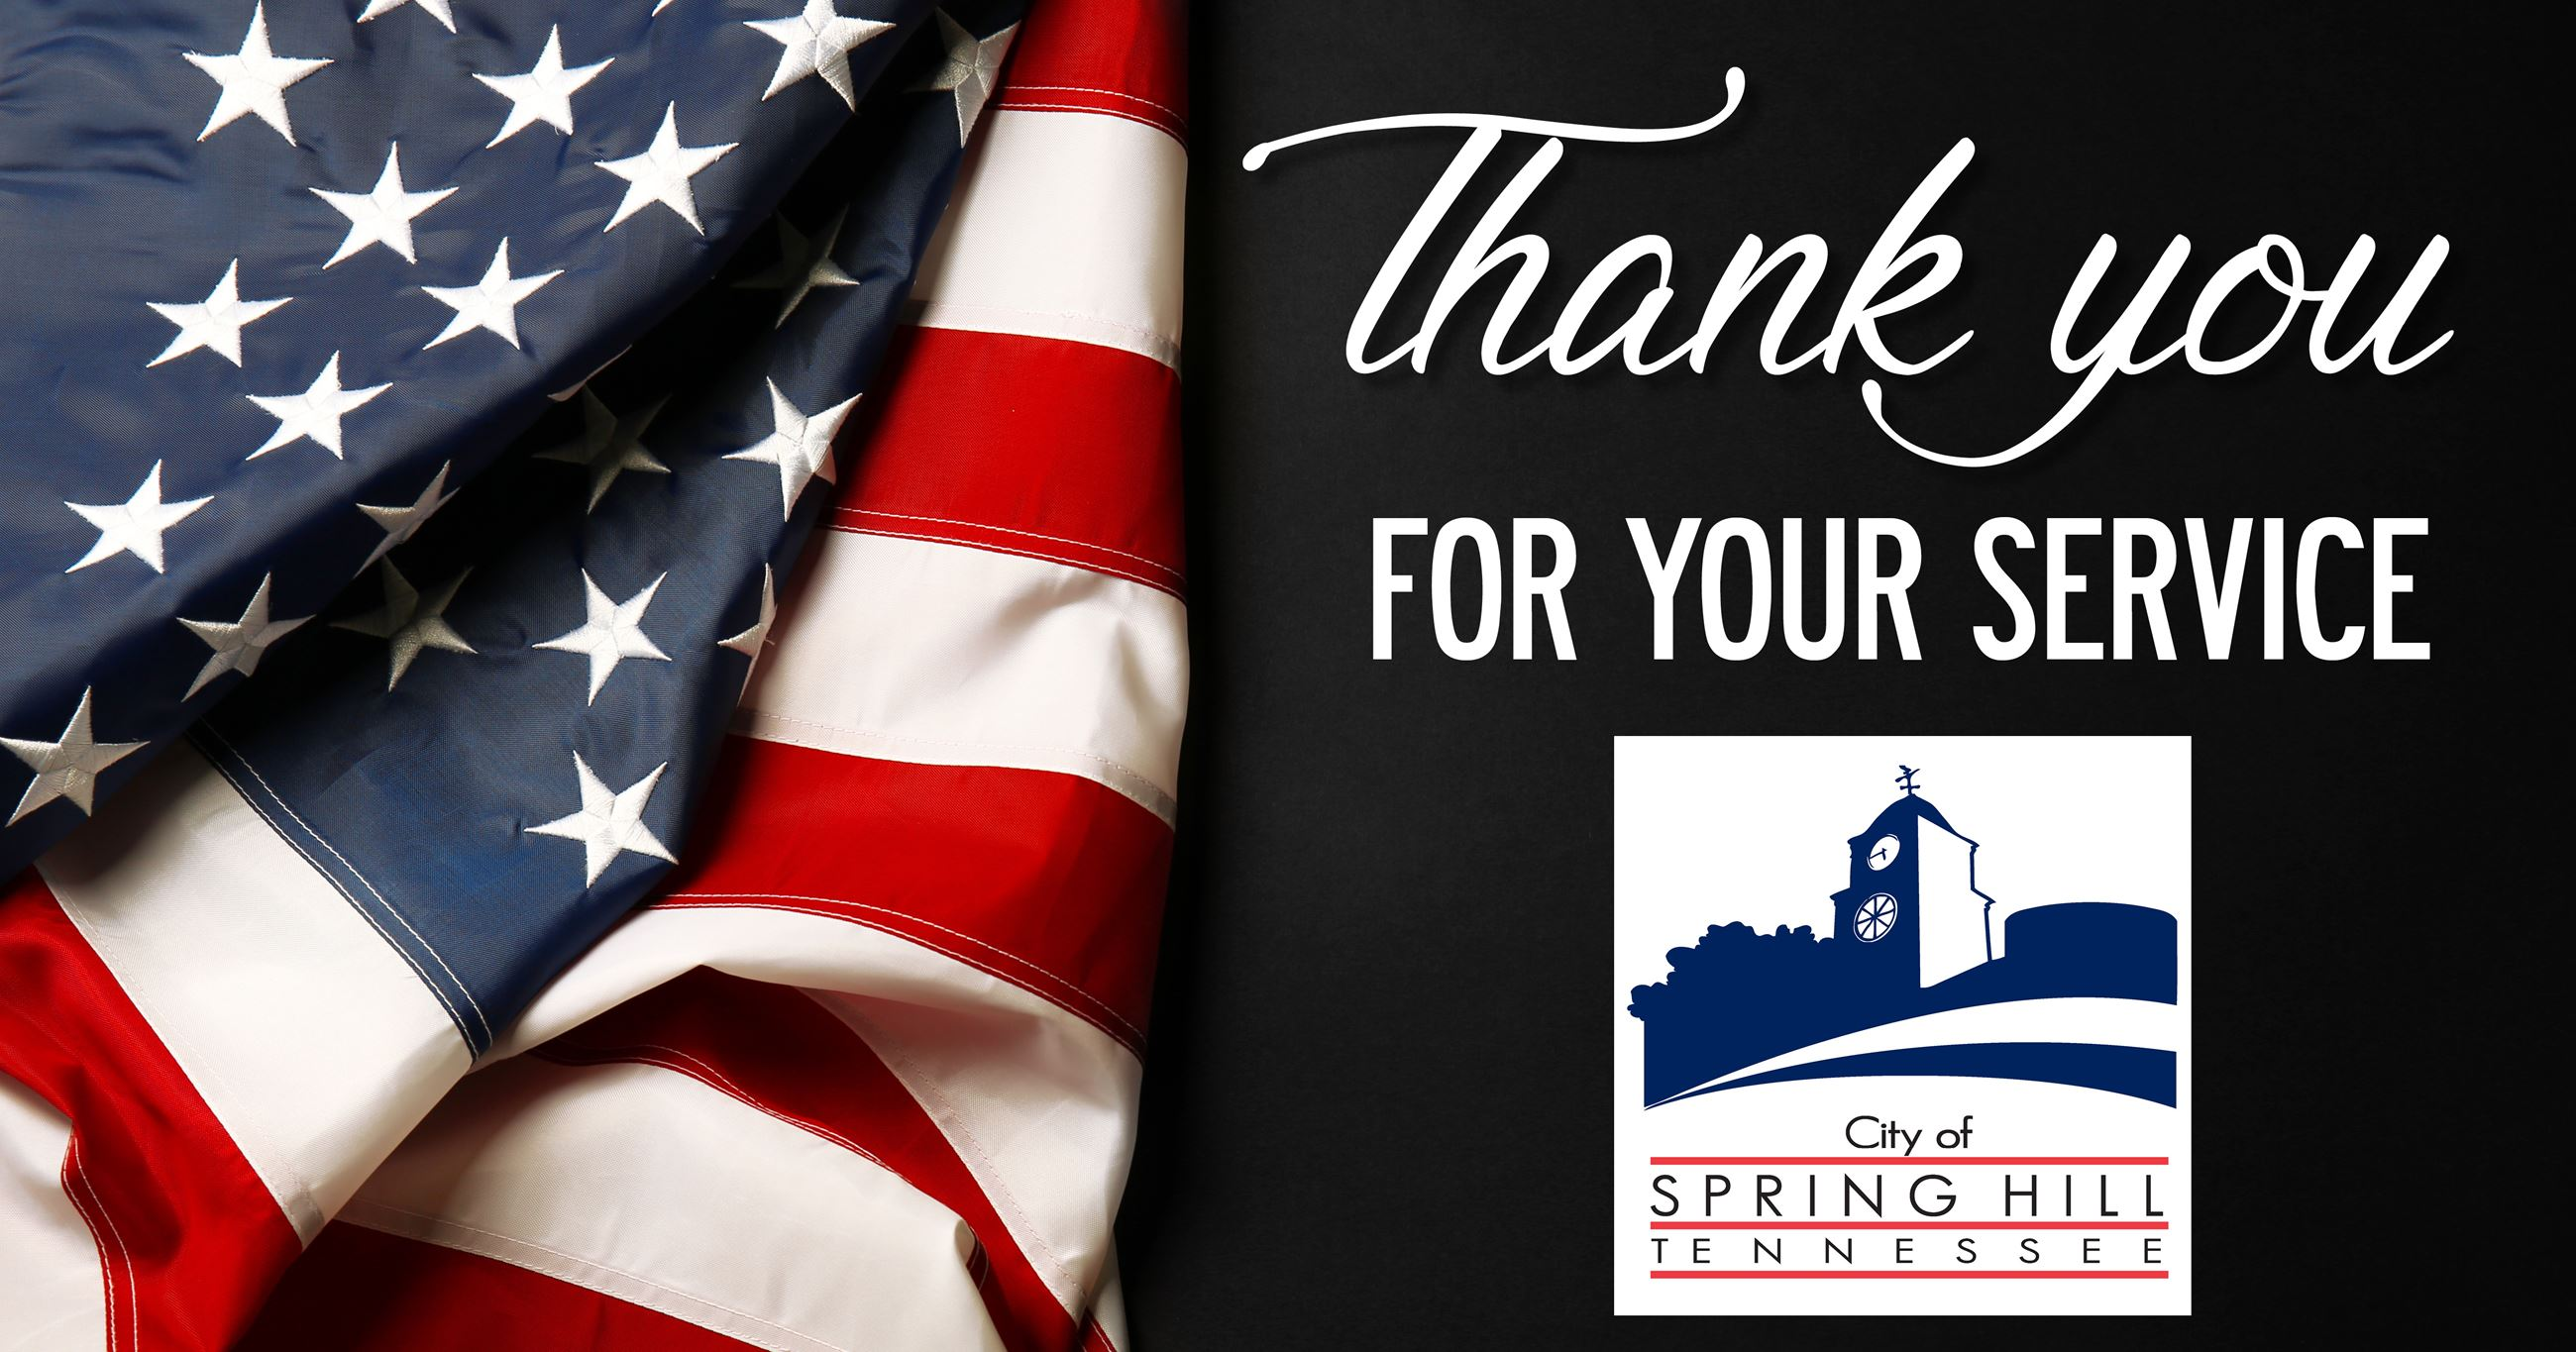 Spring Hill City offices will be closed for Veterans Day